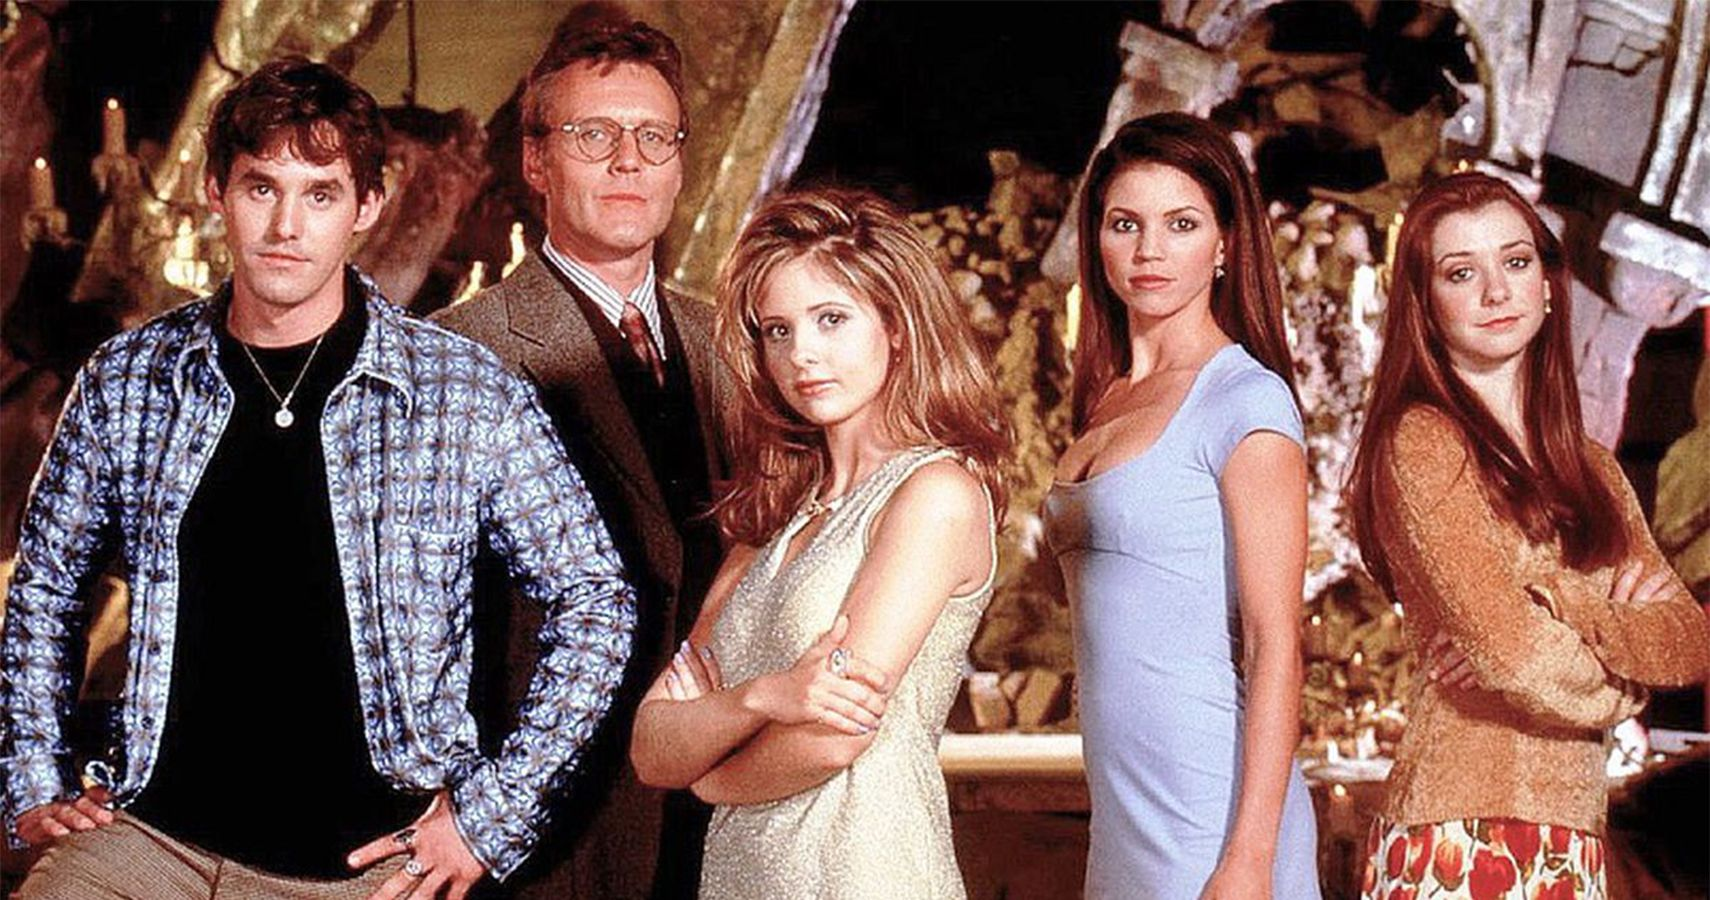 Buffy The Vampire Slayer: 5 Teen Wolf Villains Buffy Could Defeat (& 5 She Definitely Couldn't)